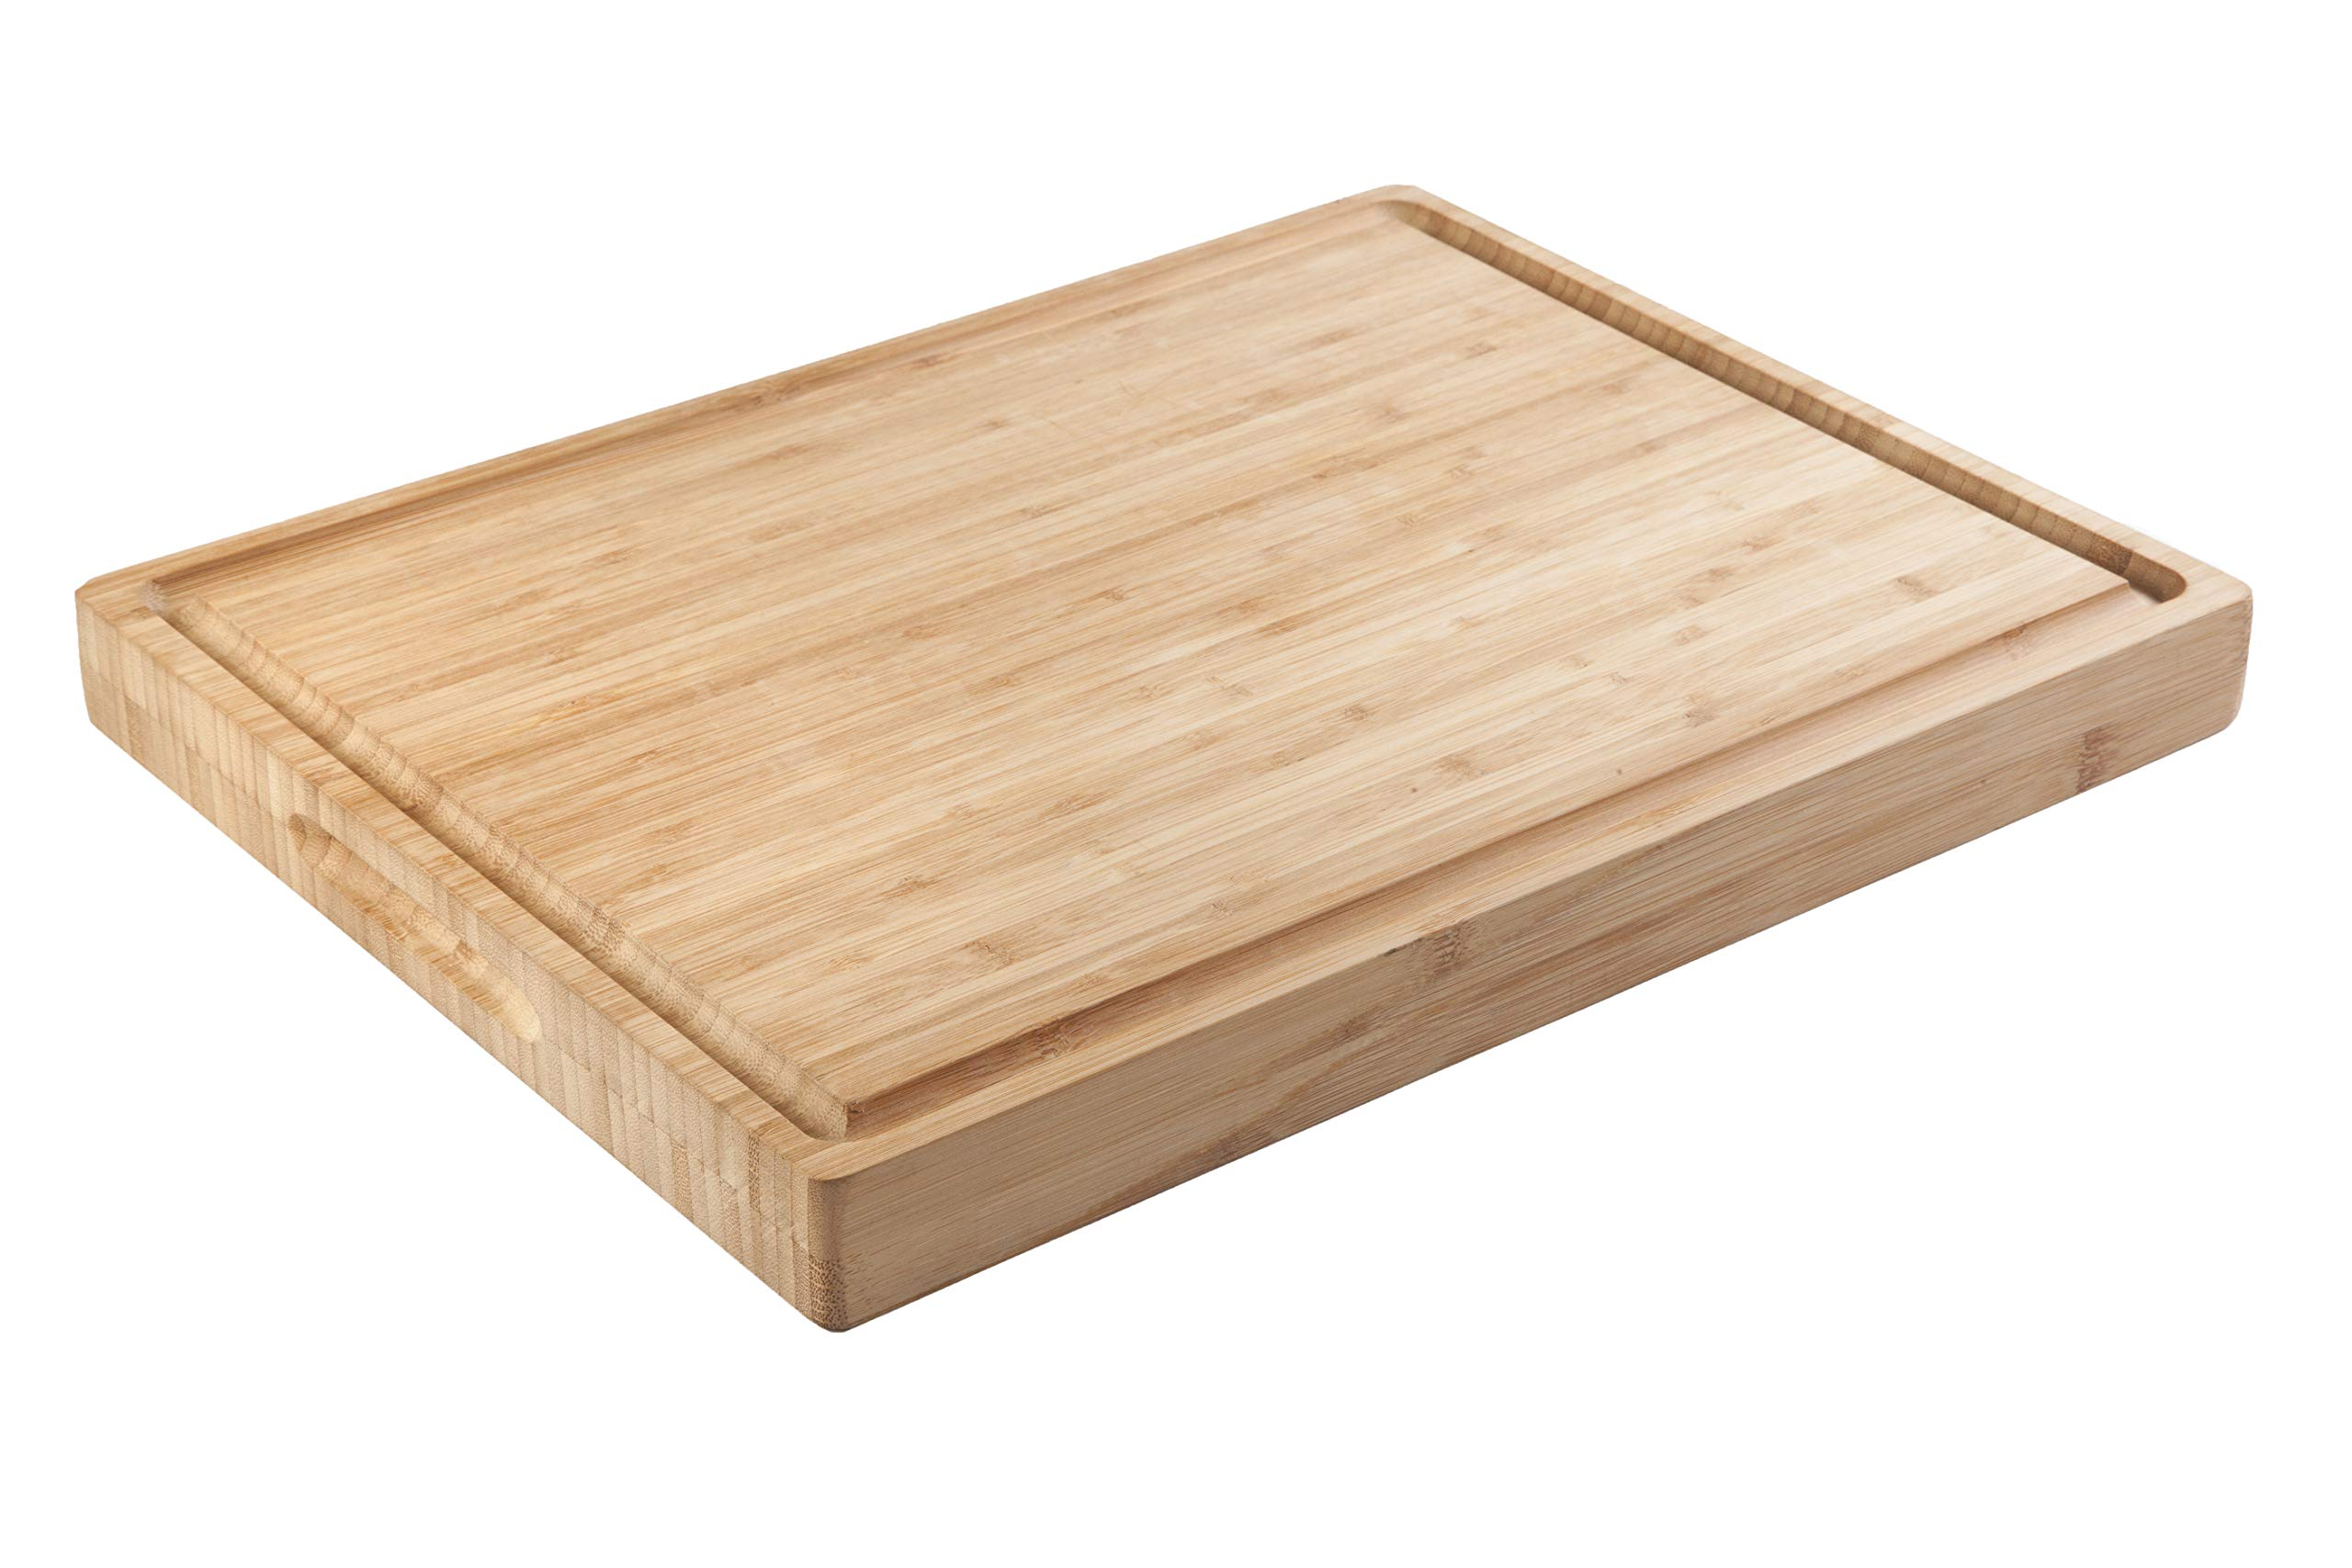 SoulFino Bamboo Butcher Block - Cutting Board, Reversible with Juice Groove and Handles - Maximum Health Benefits and Low Maintenance - Less Bacteria Bamboo Means a Healthier Family